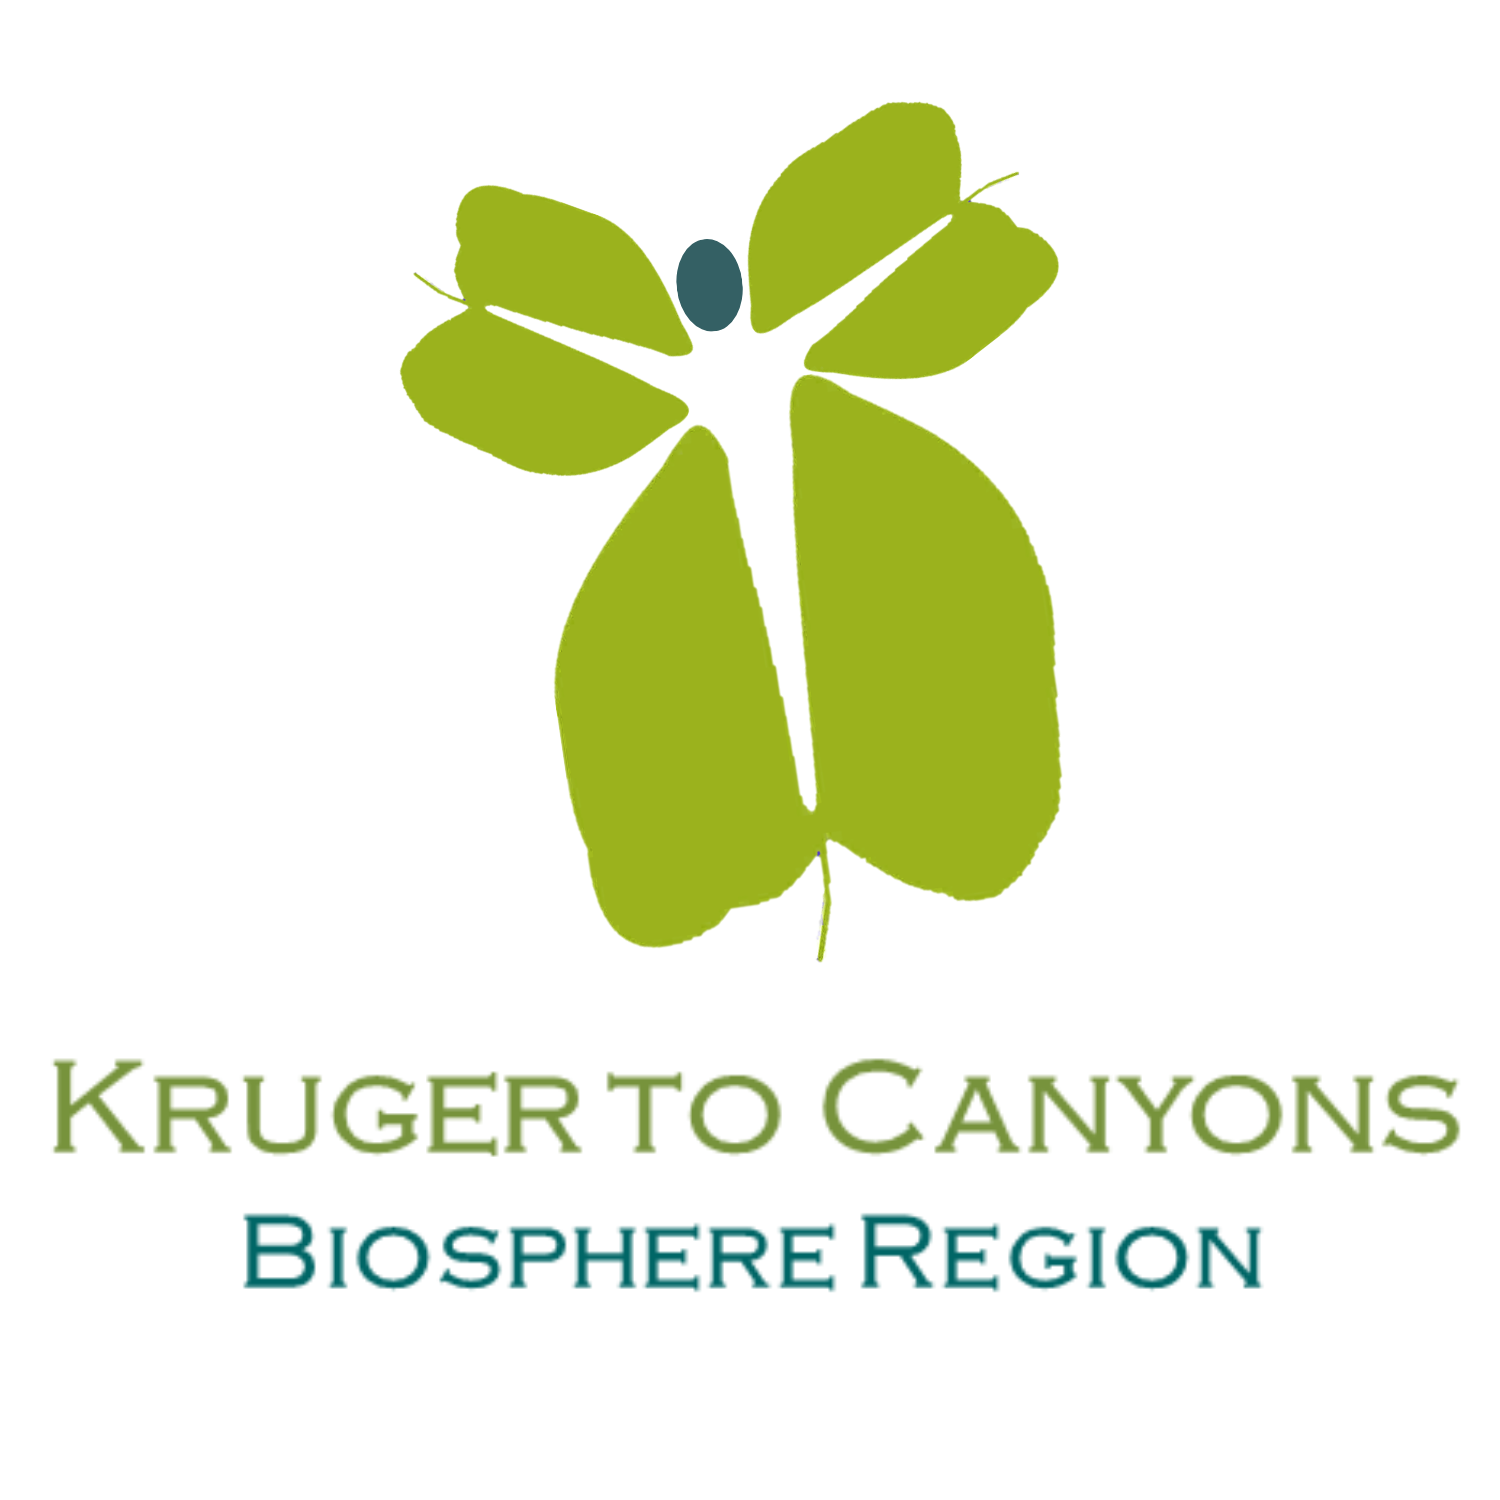 Kruger to Canyons Biosphere Region (NPC)